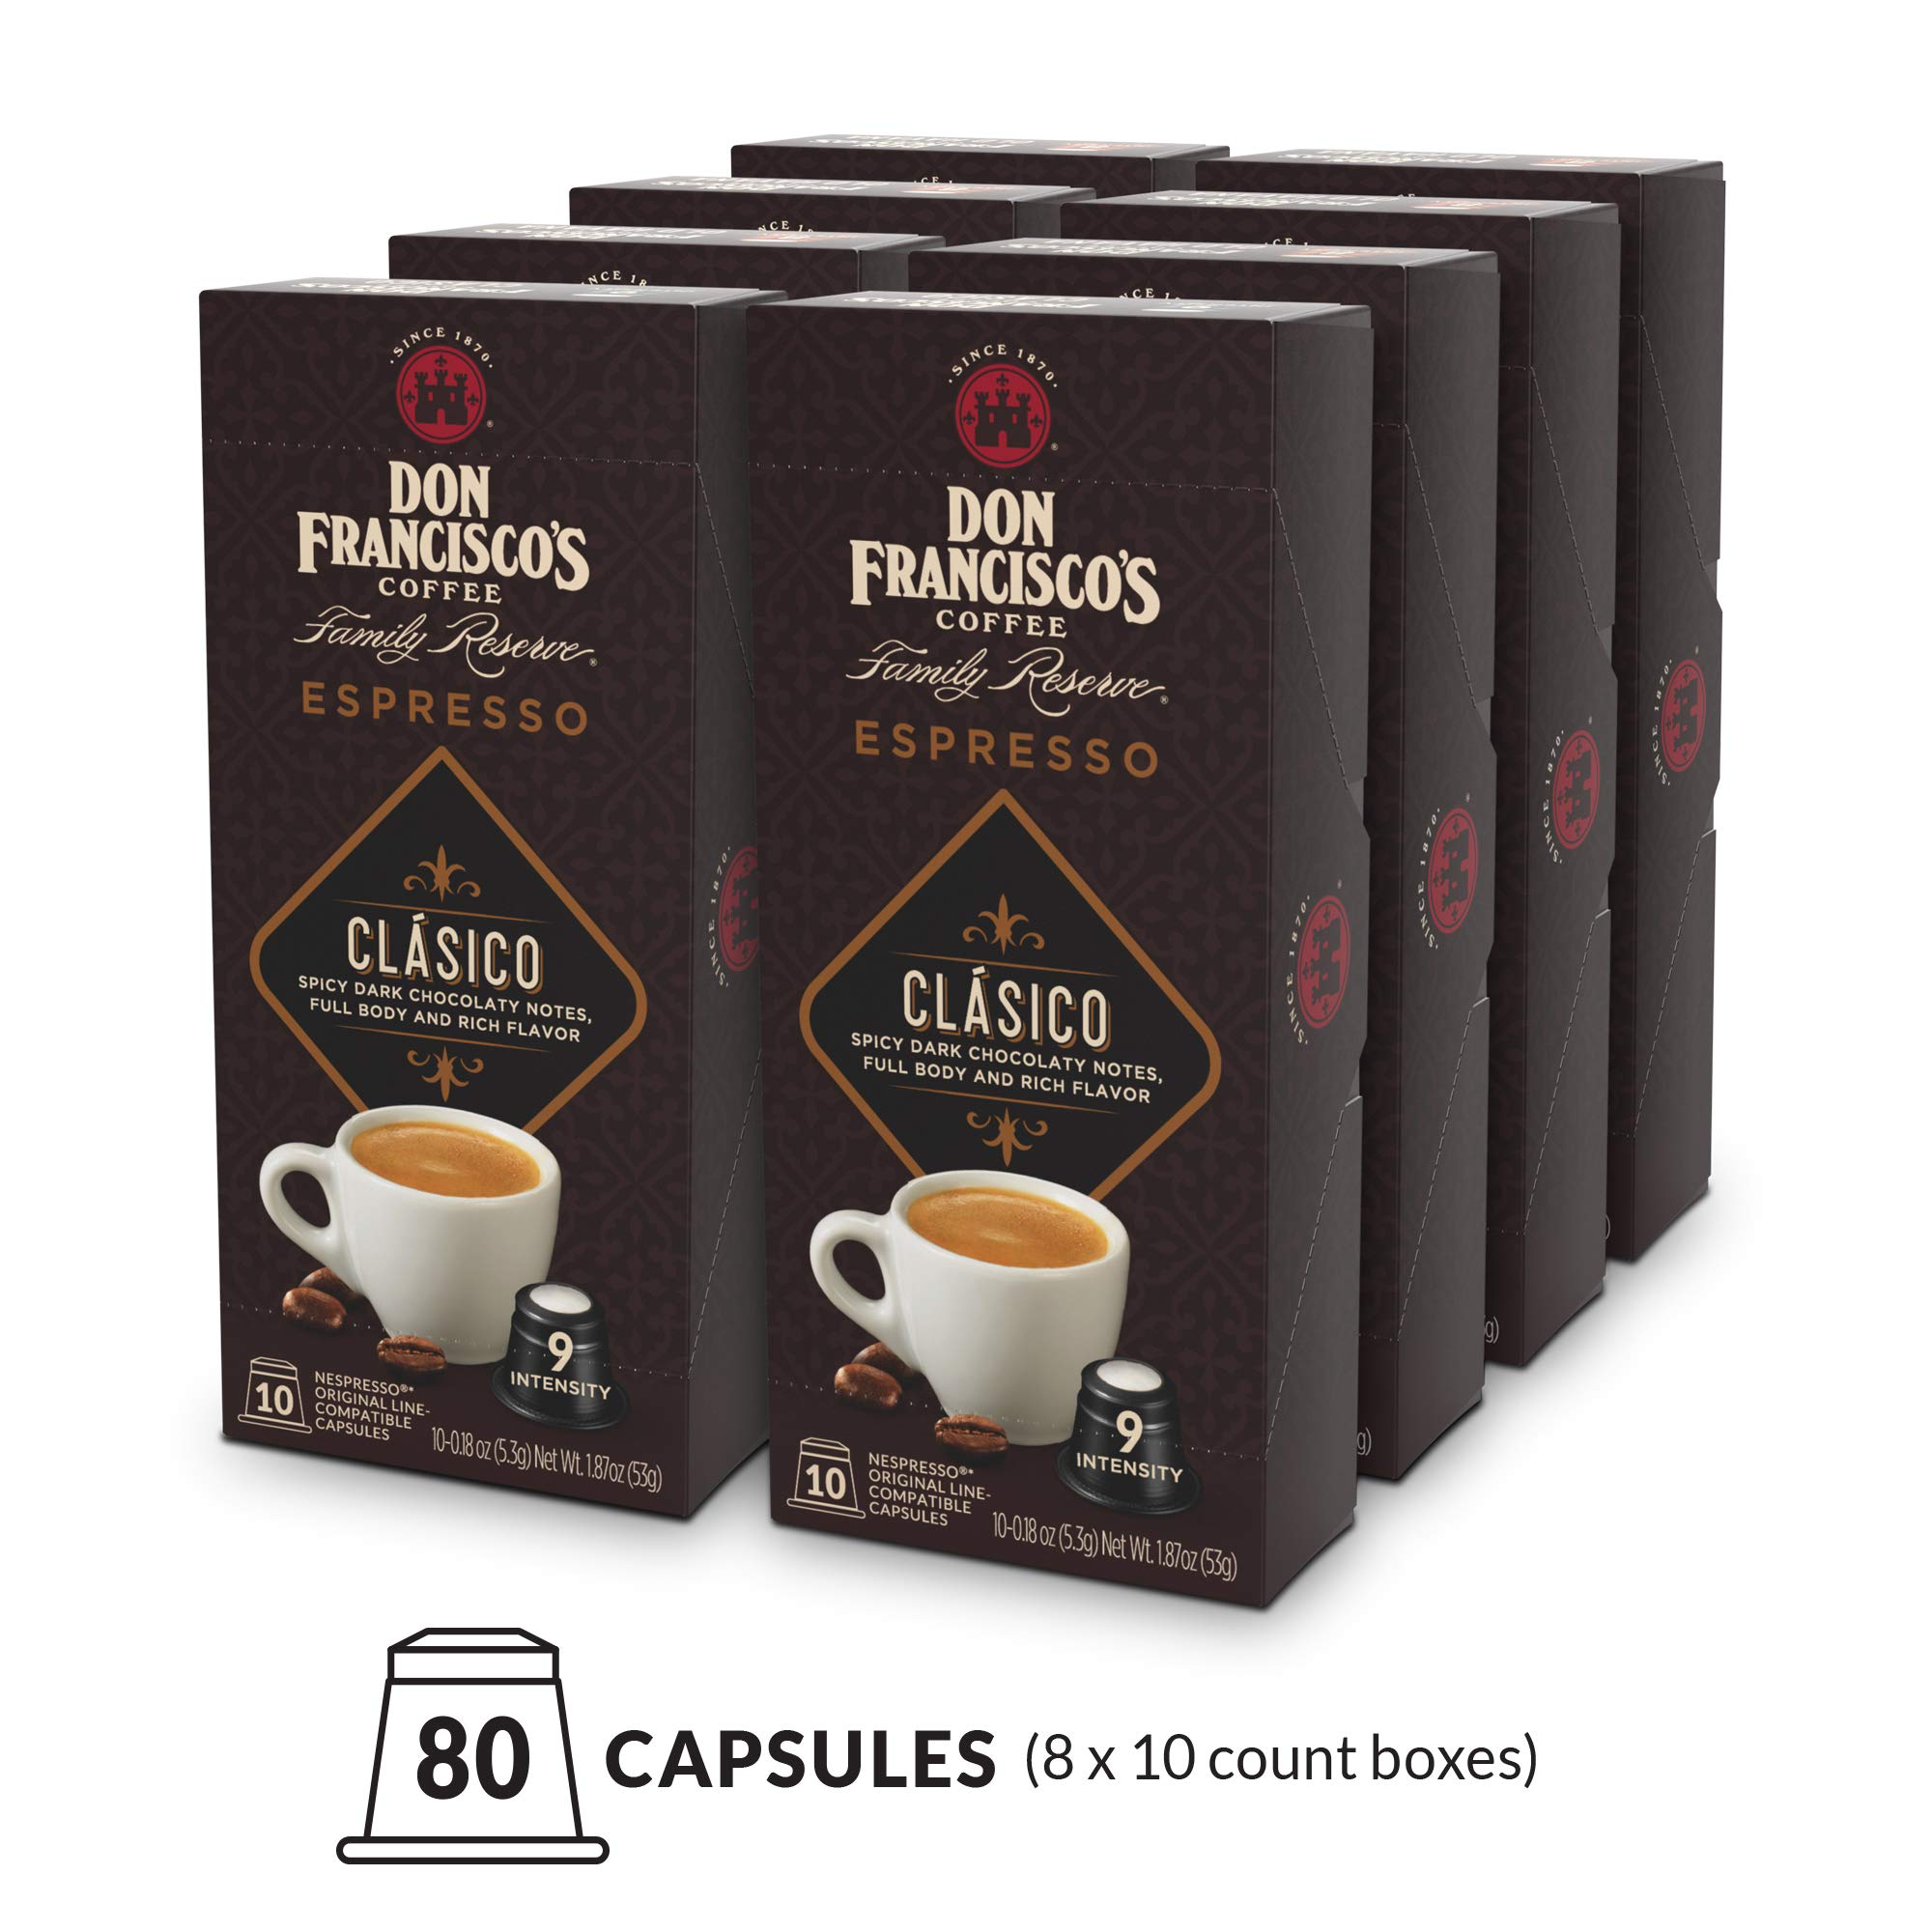 Don Franciscos Espresso Capsules Clasico, Intensity 9 (80 Pods) Compatible with Nespresso OriginalLine